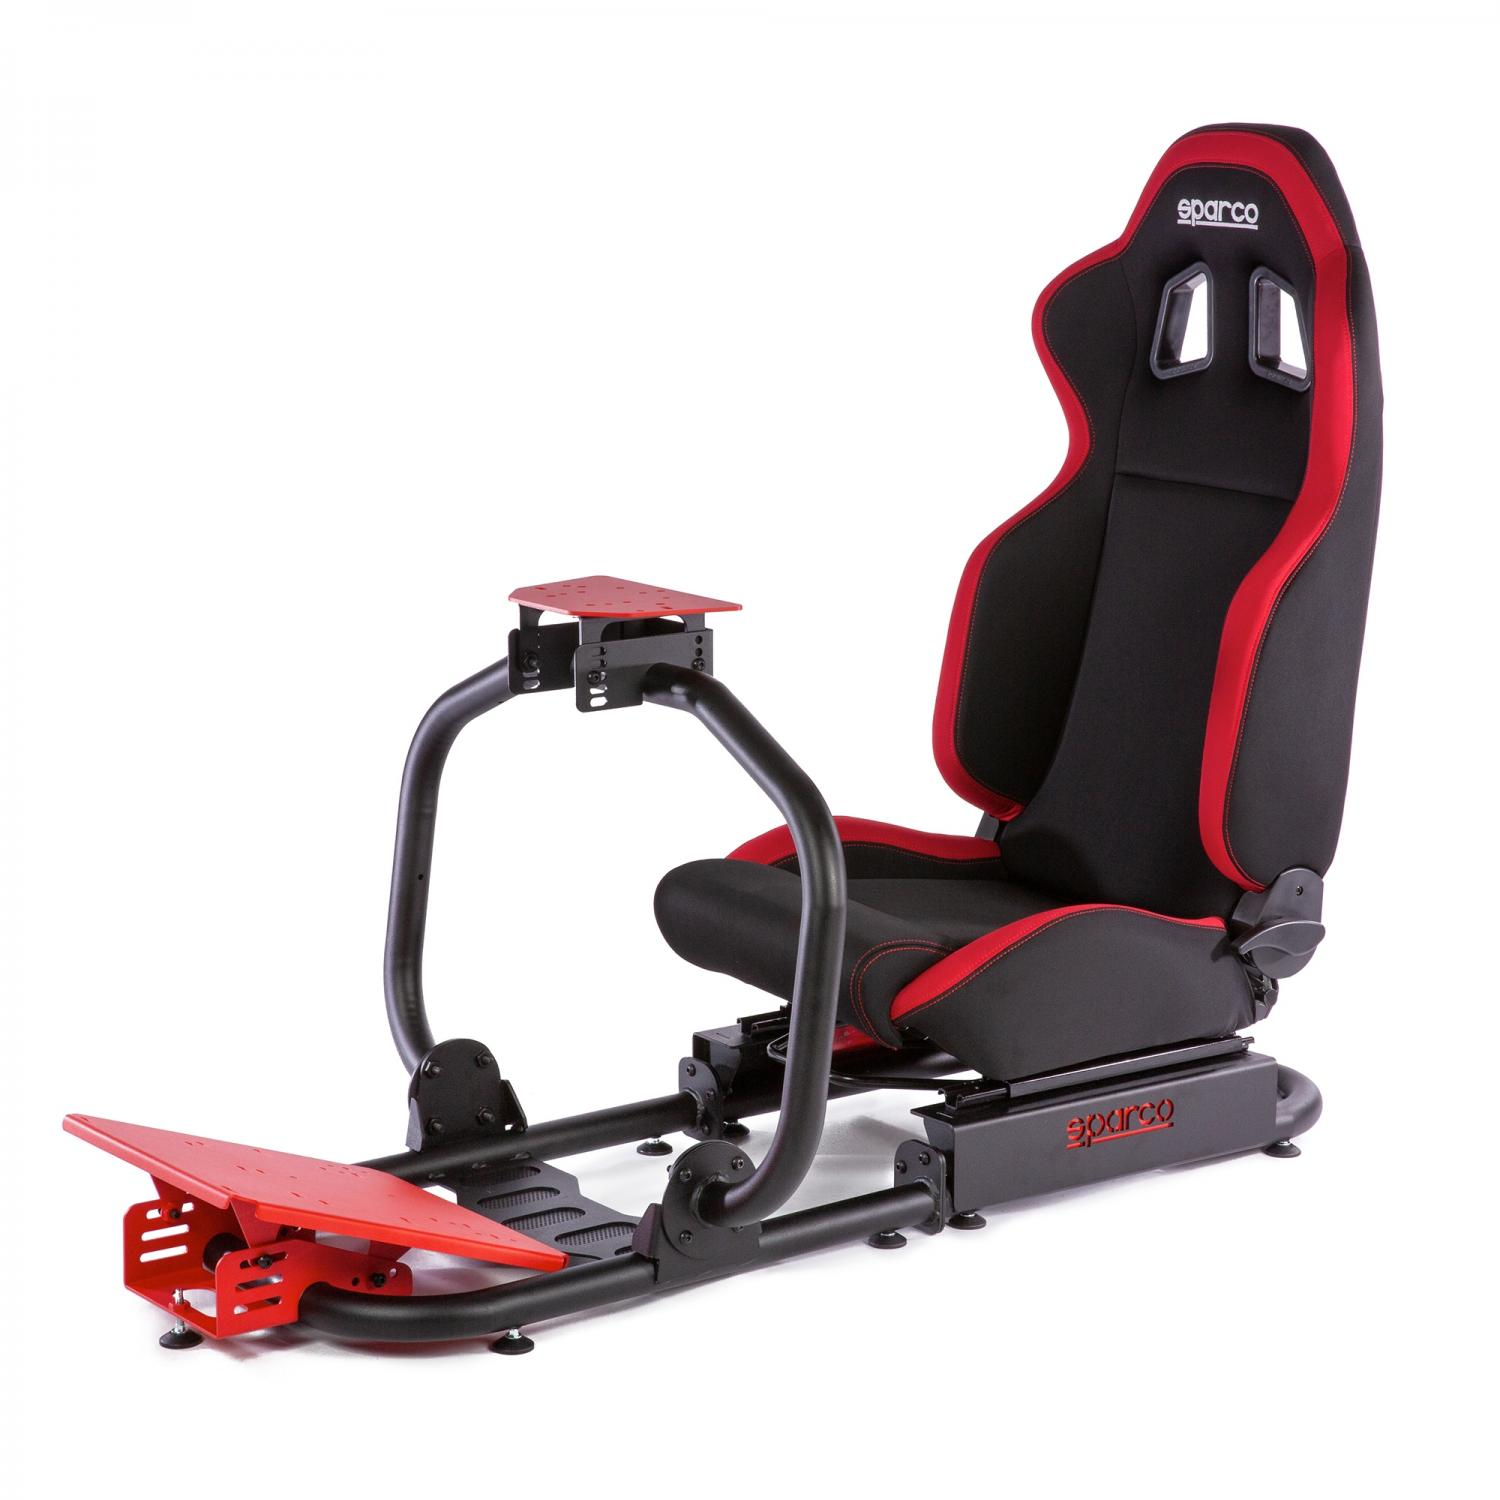 Sim Racing Sparco Evolve-R